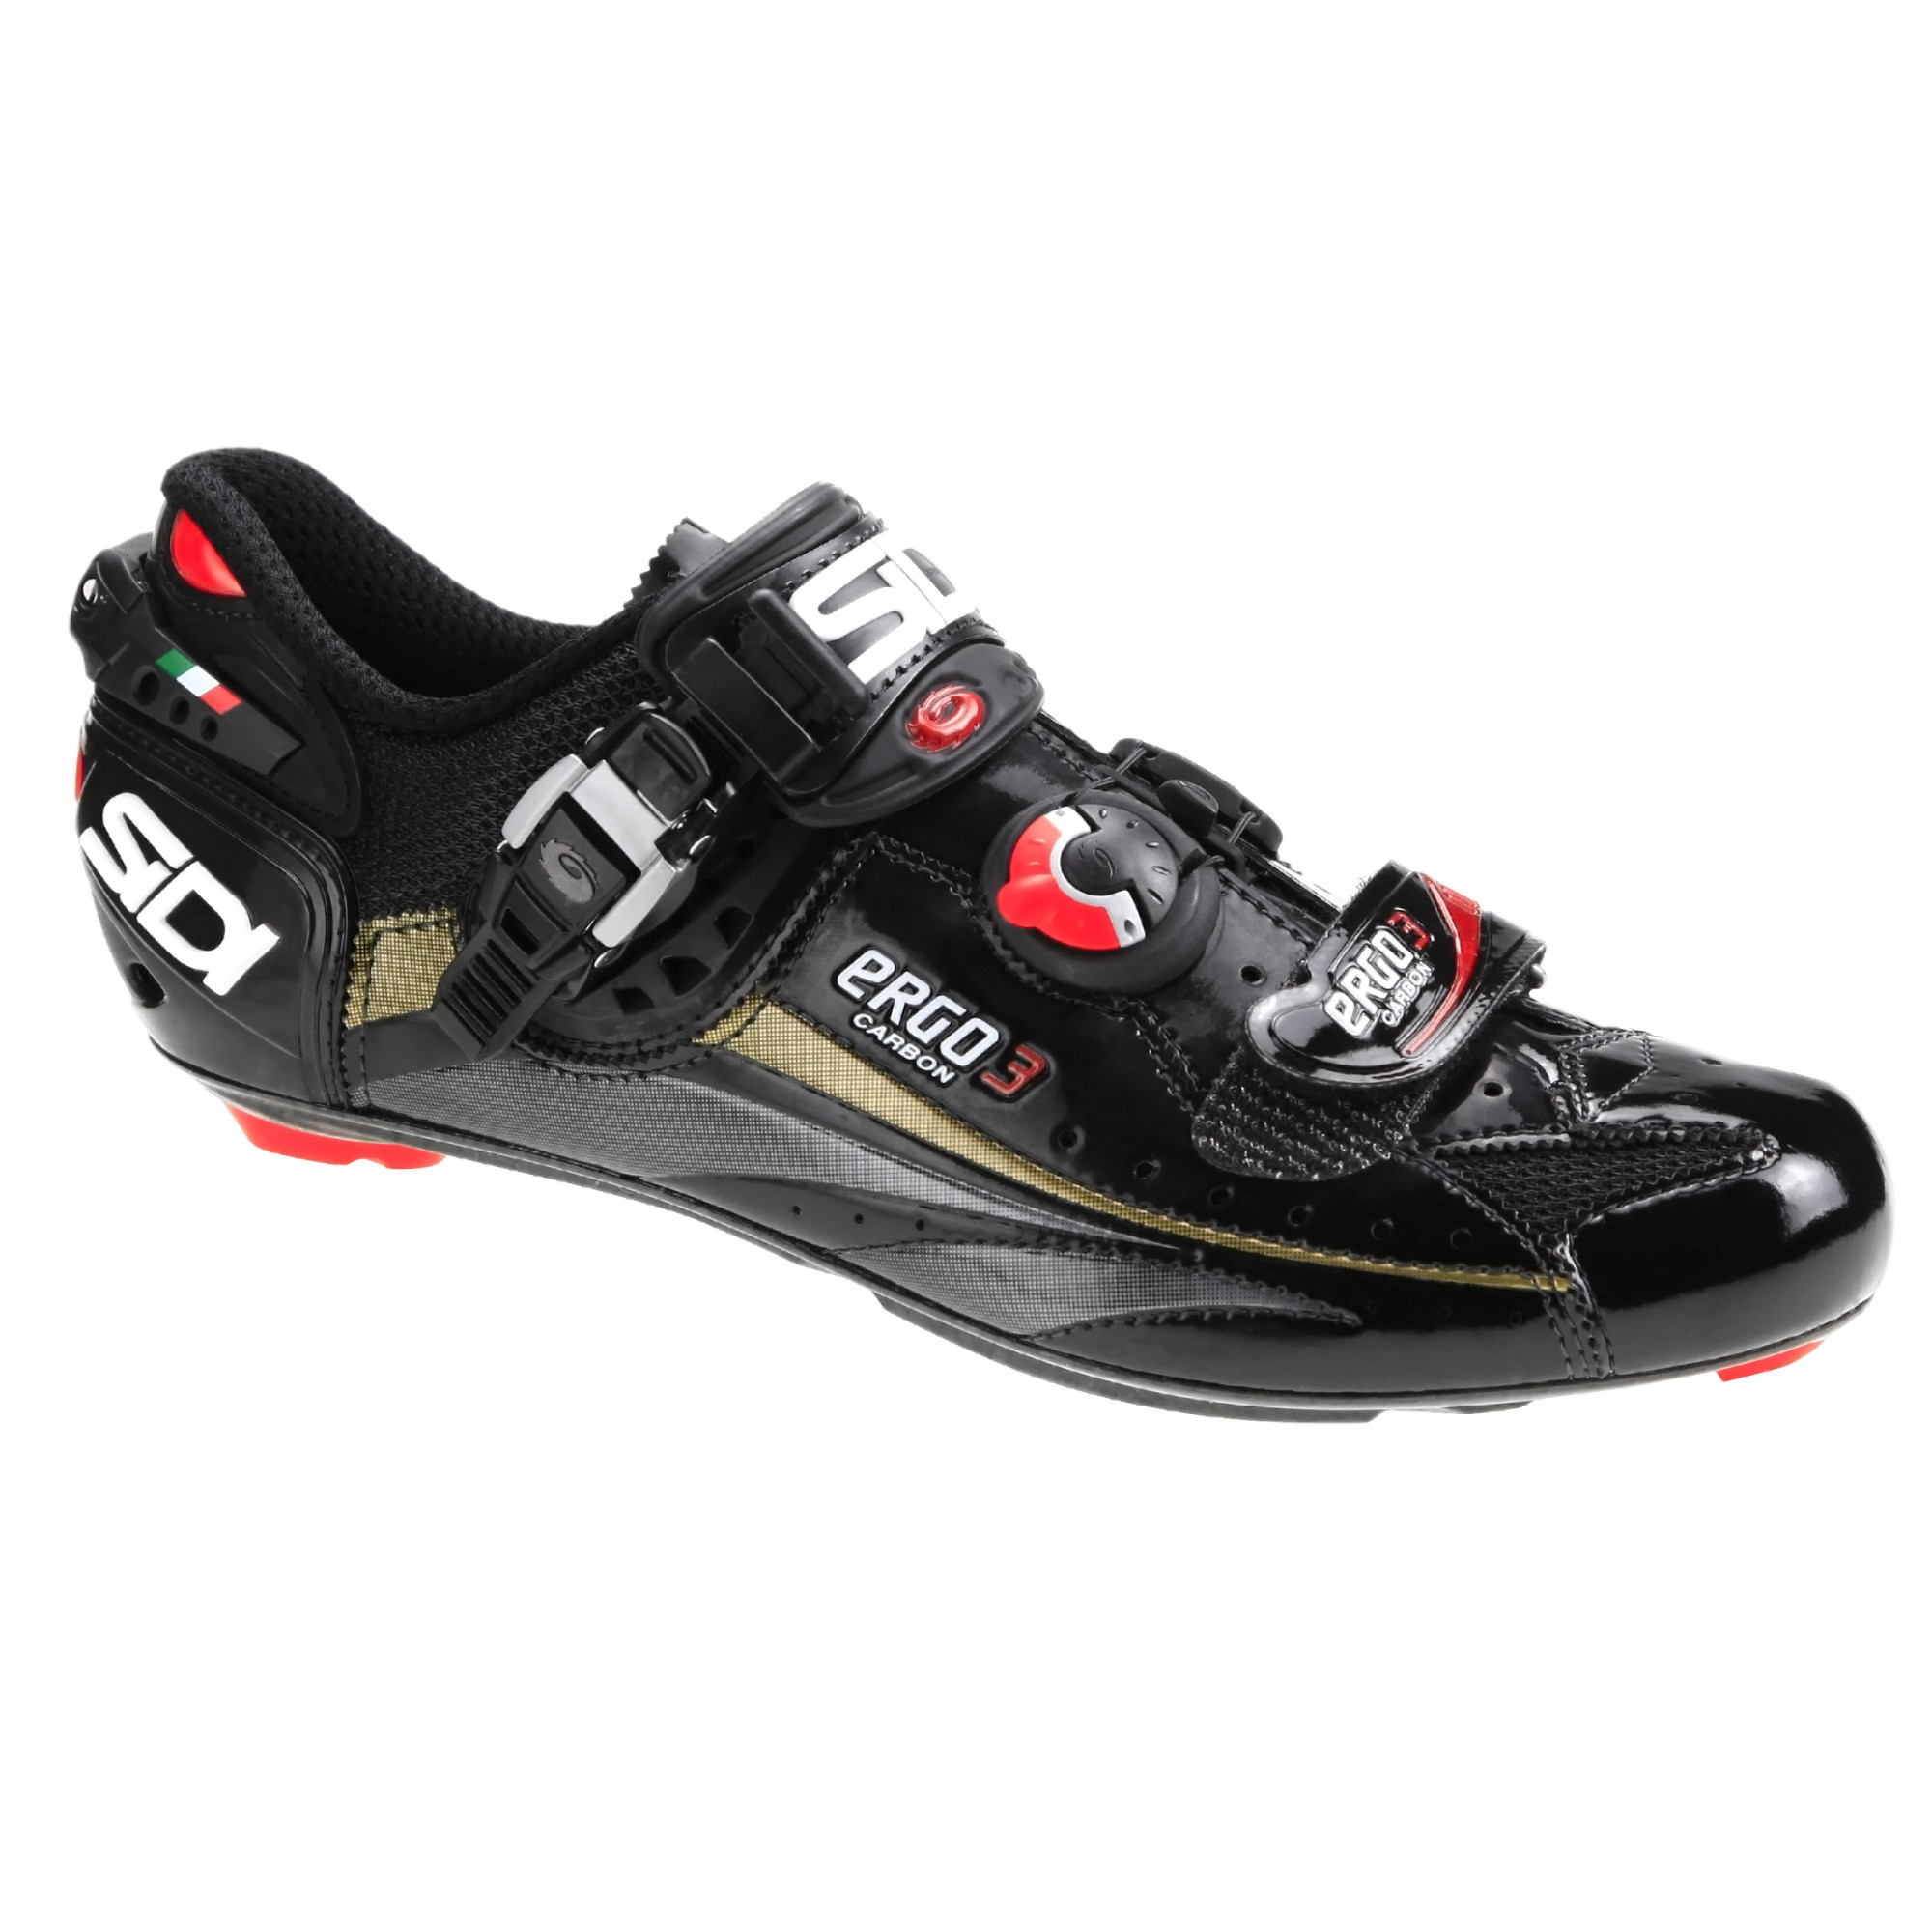 Sidi Ergo 3 Carbon Vernice Road Shoes - Cycling Express